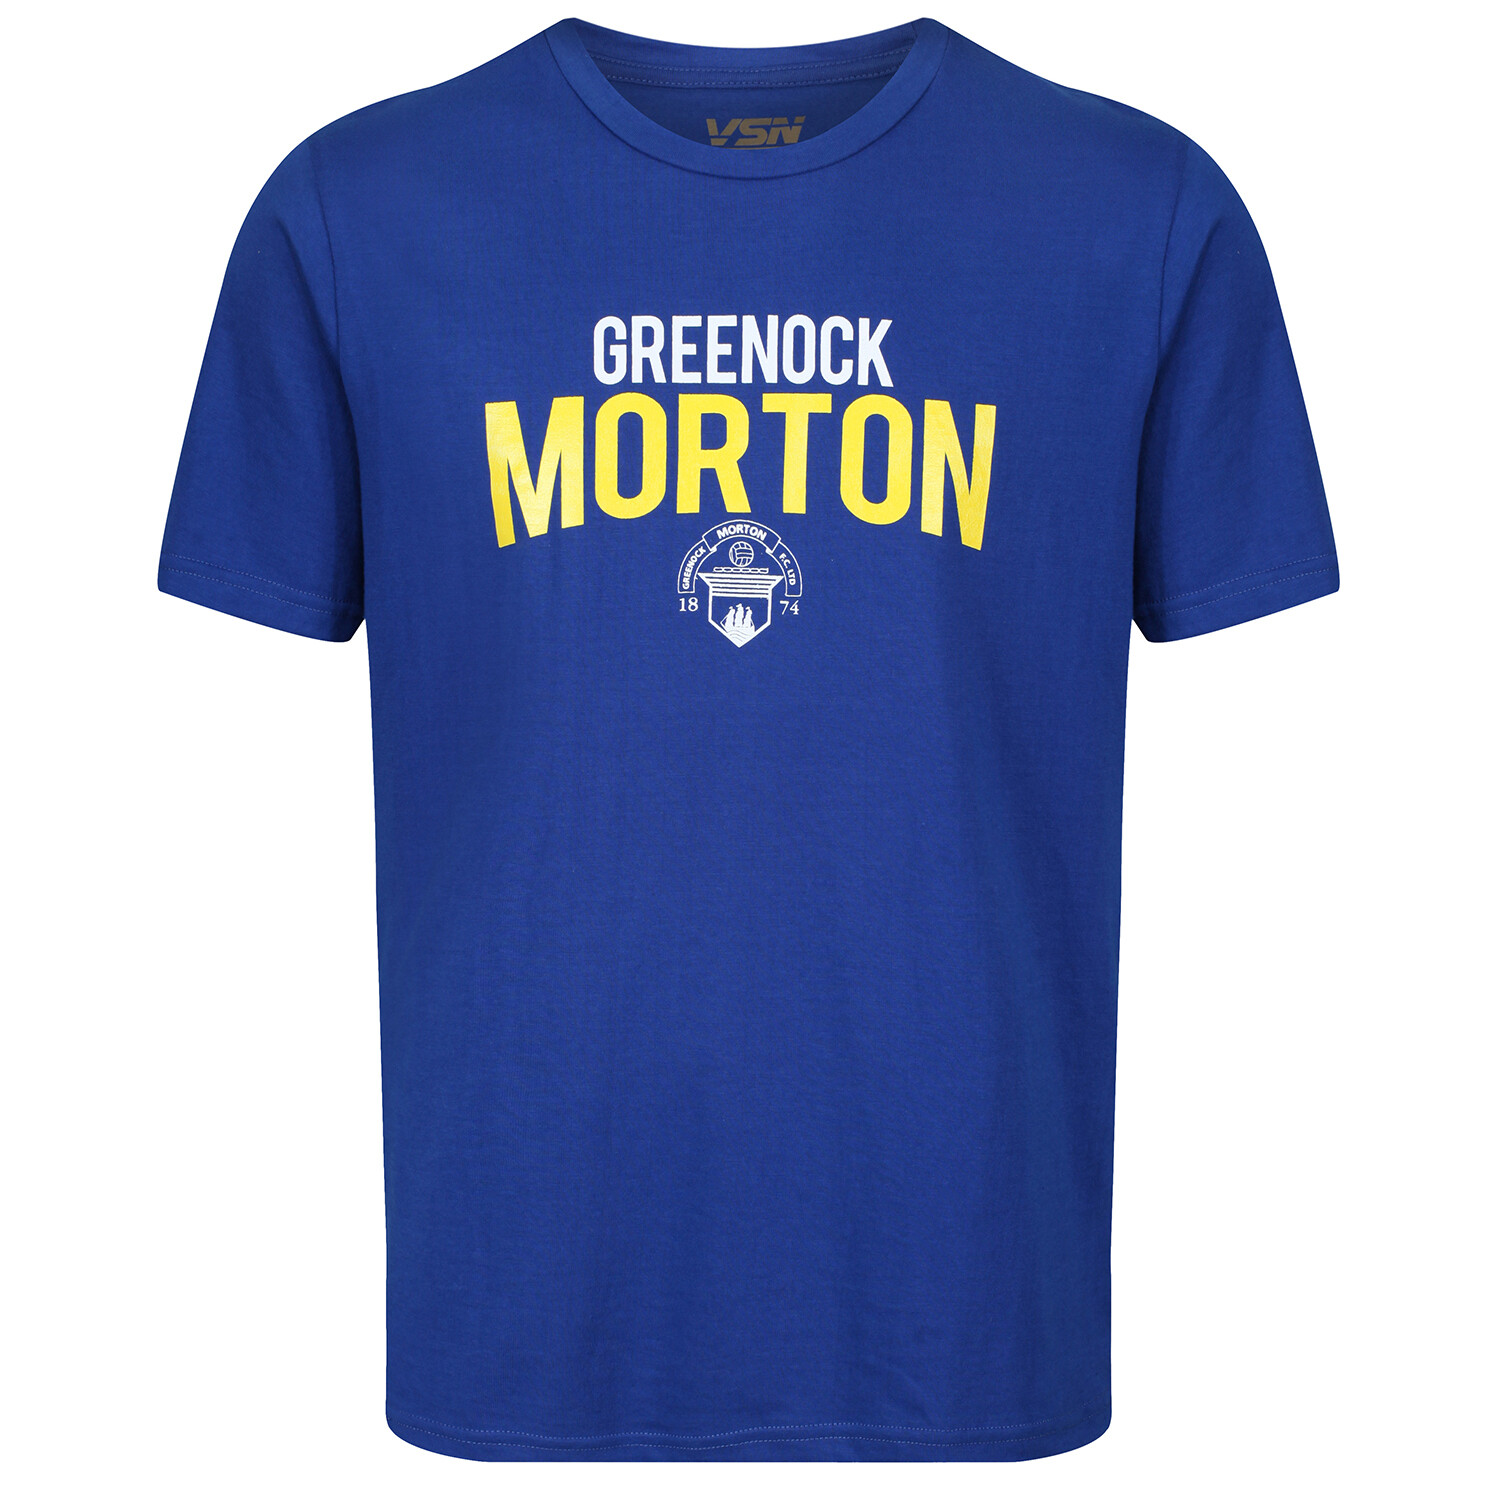 Morton 'In Yellow' Leisure T-Shirt